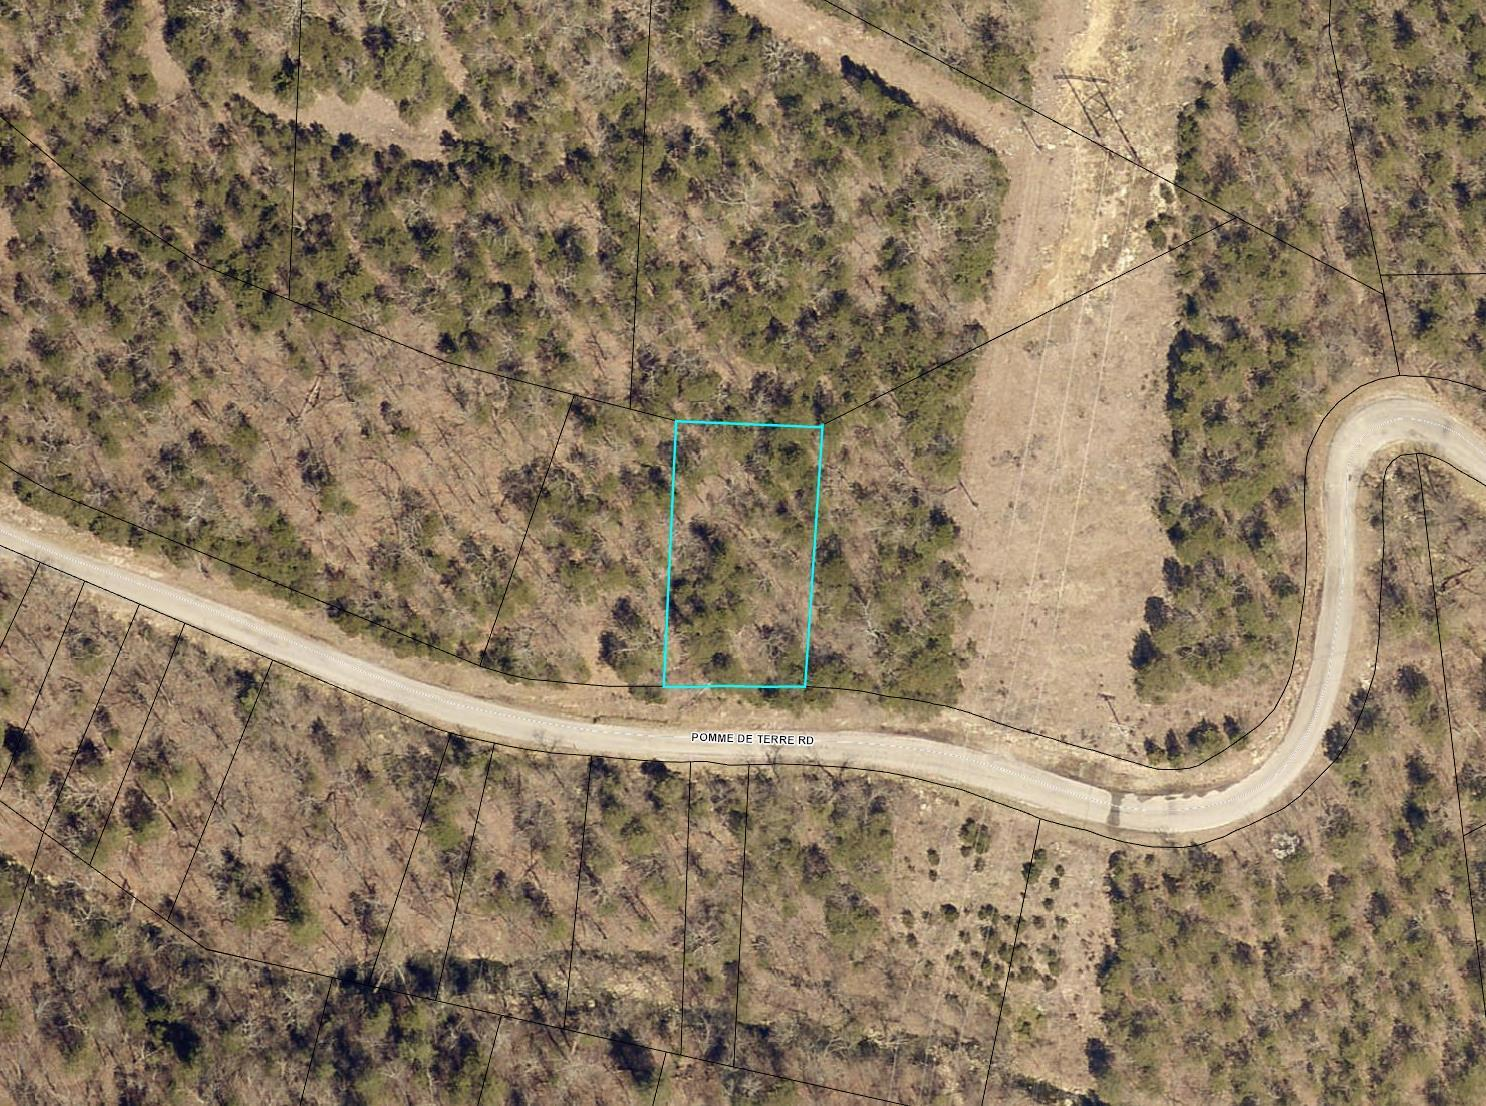 Lot 70 Pomme de Terrace Road Branson, MO 65616